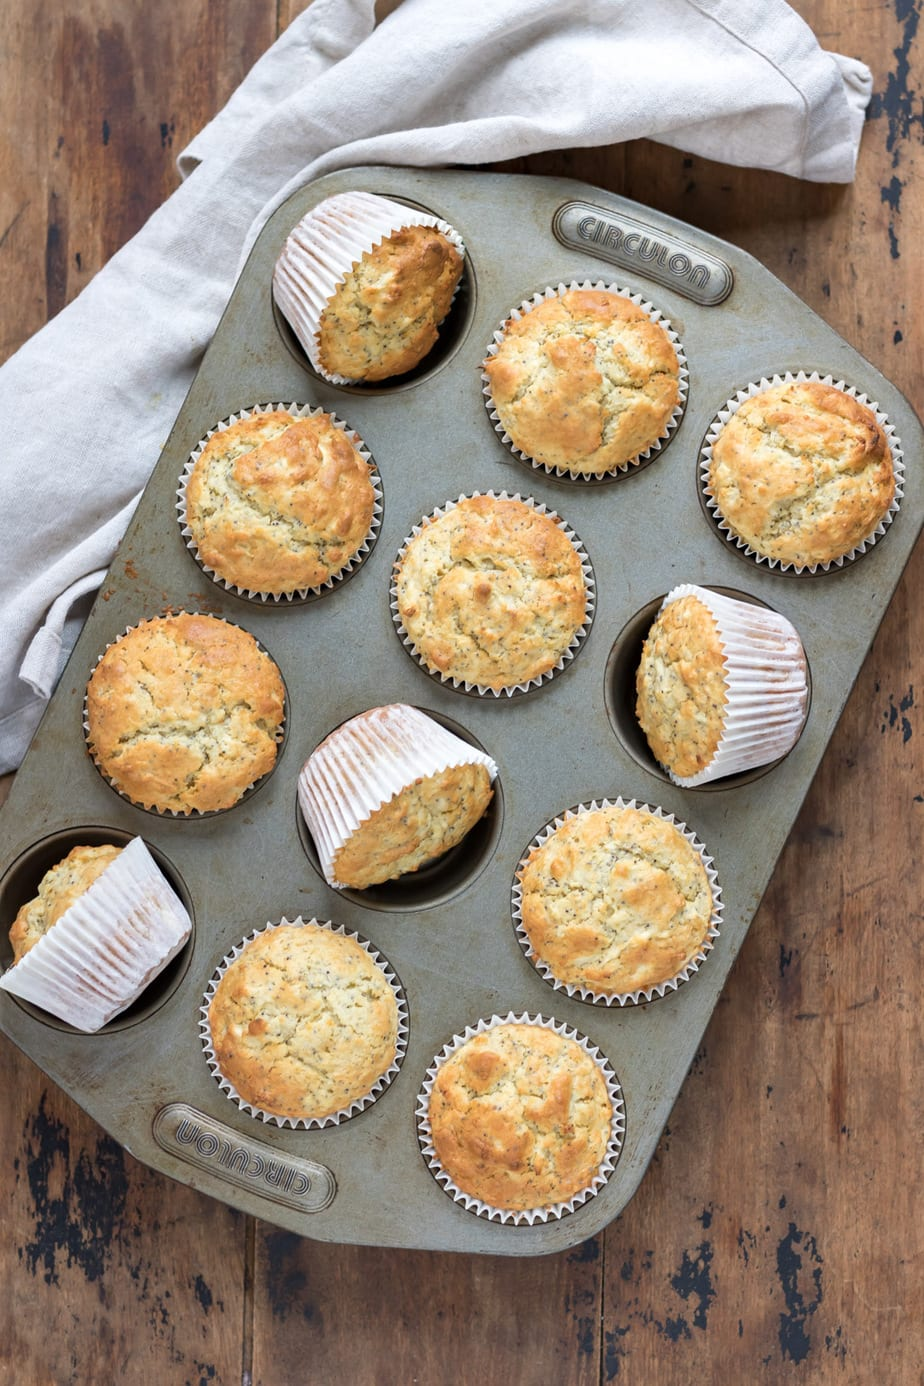 Muffins in a muffin tray with some on their side.